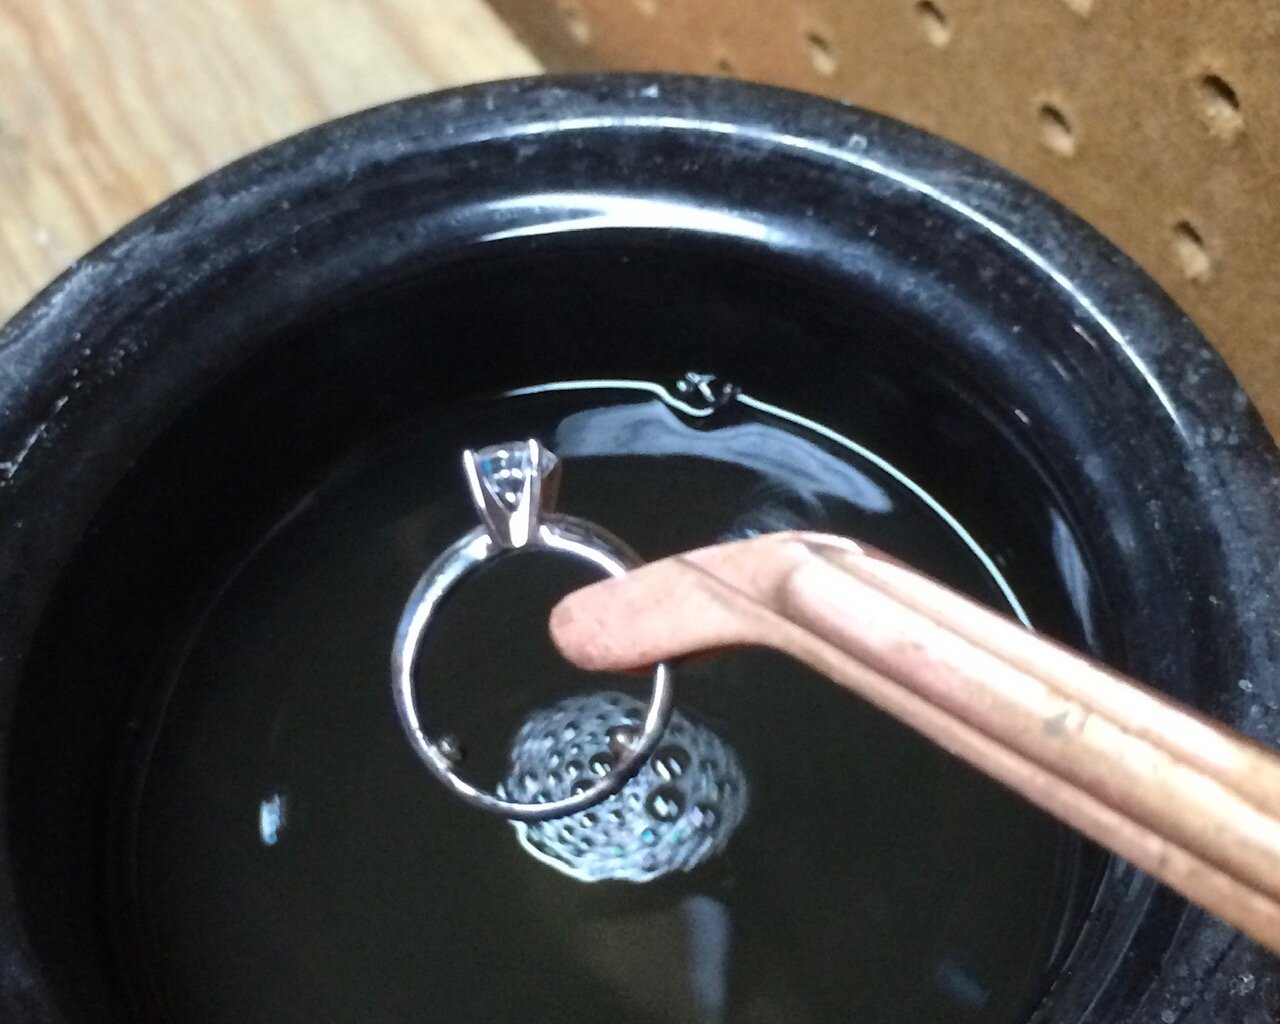 Using copper tongs to prevent contamination, the ring is dipped in an acid pickle bath to remove the black firescale.